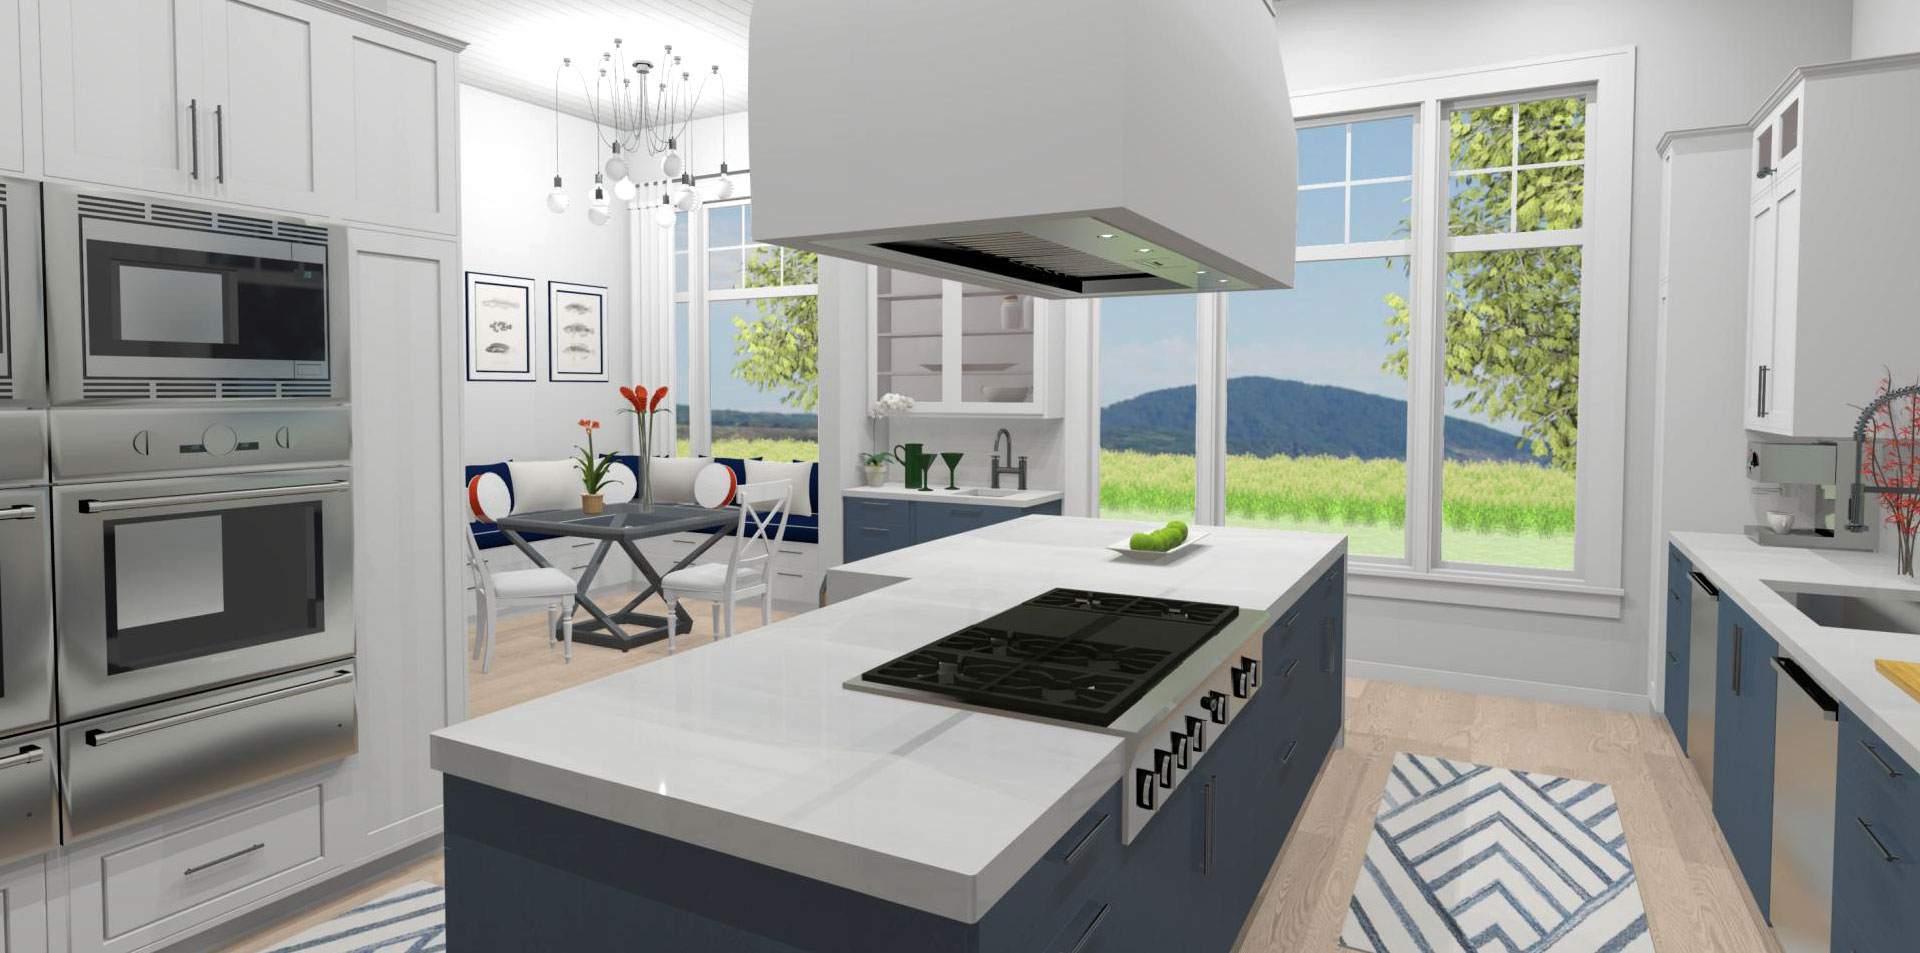 A kitchen interior with an island and range hood.